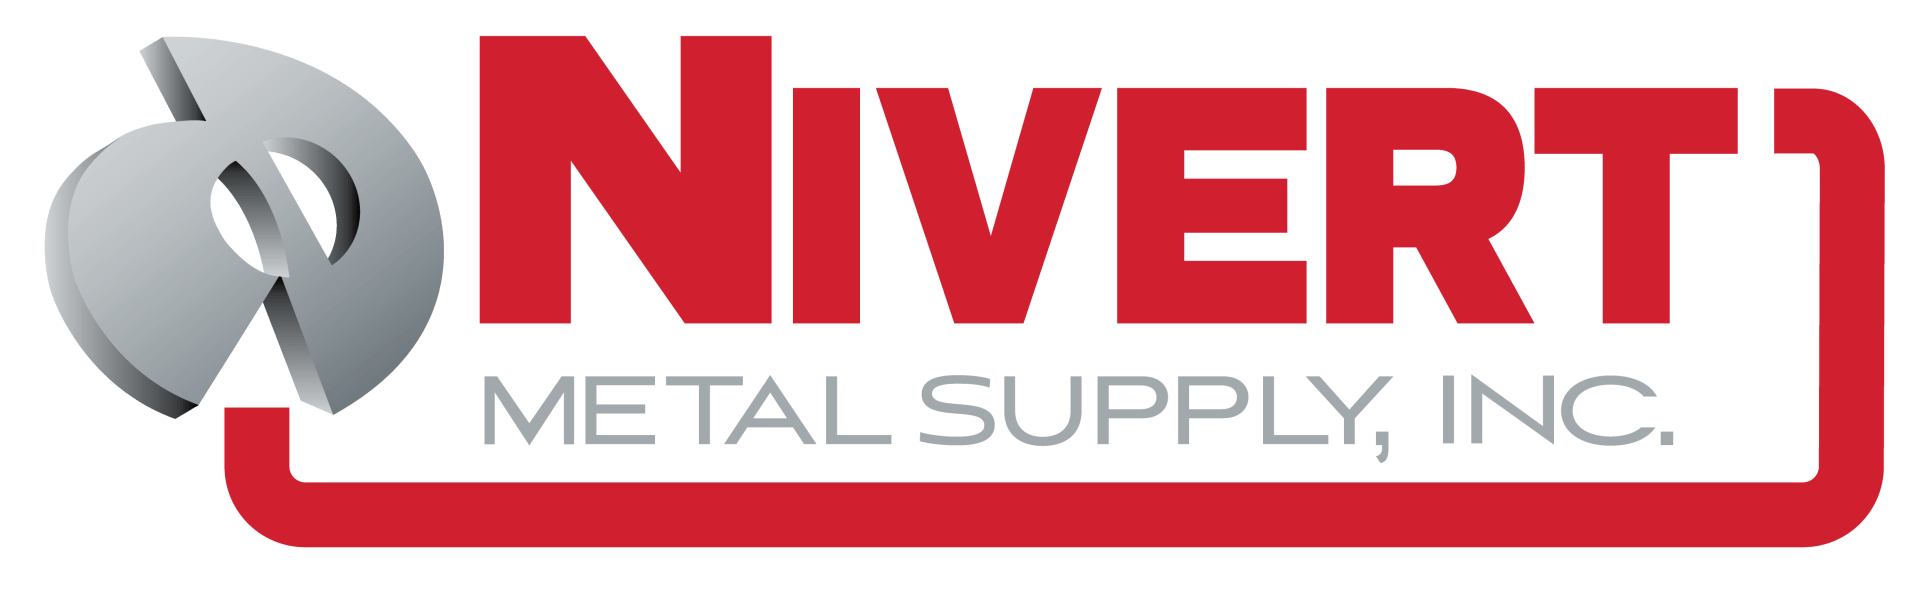 Nivert Metal Supply Inc - Logo